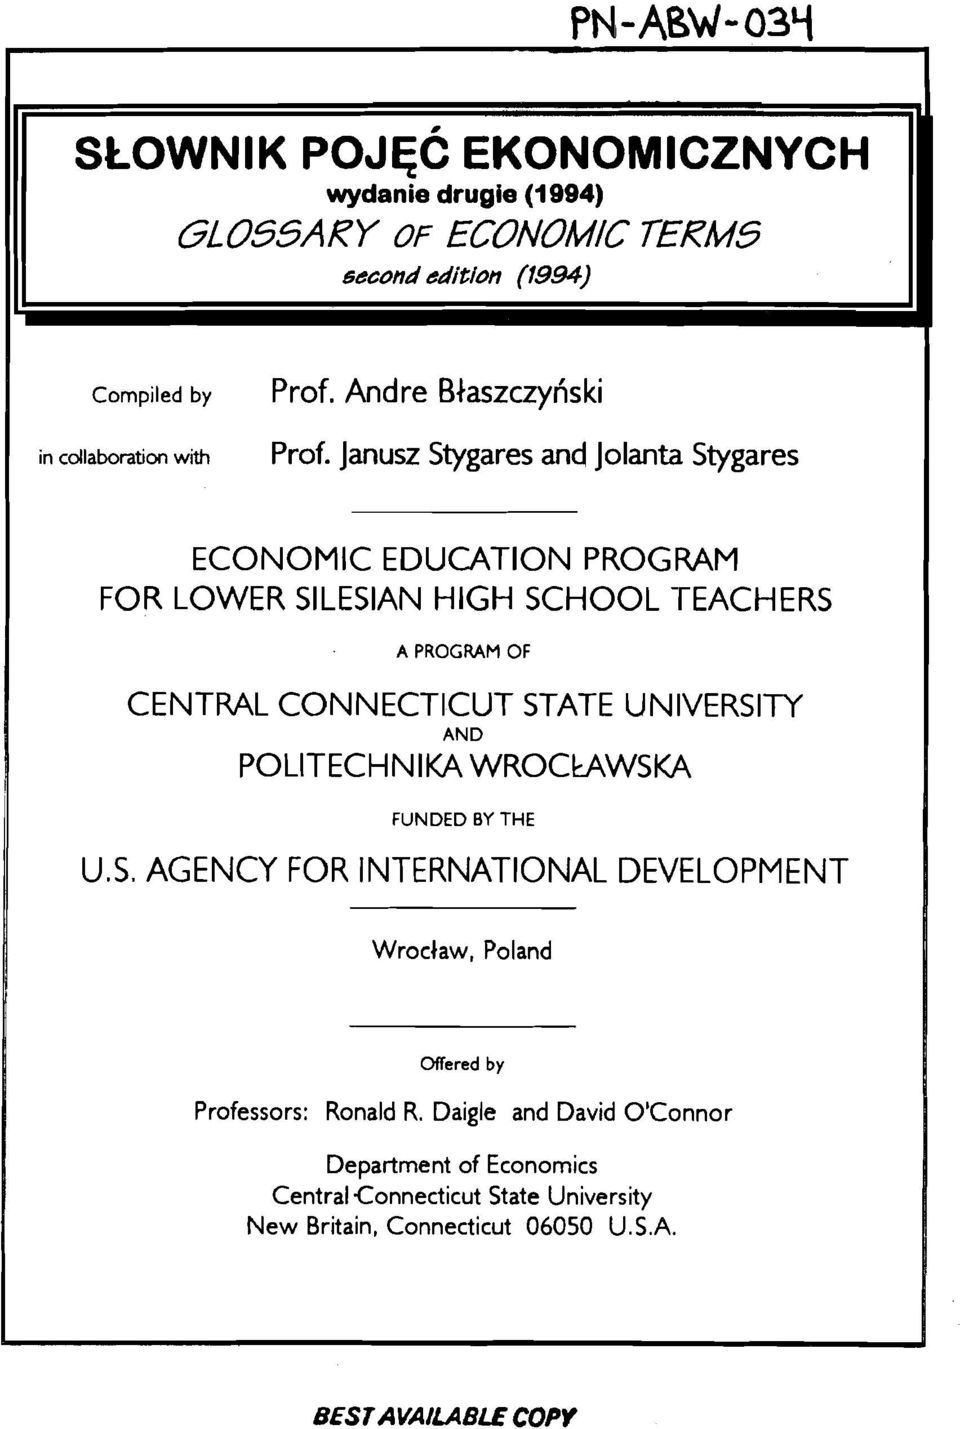 Janusz Stygares and Jolanta Stygares ECONOMIC EDUCATION PROGRAM FOR LOWER SlLESlAN HIGH SCHOOL TEACHERS A PROGRAM OF CENTRAL CONNECTICUT STATE